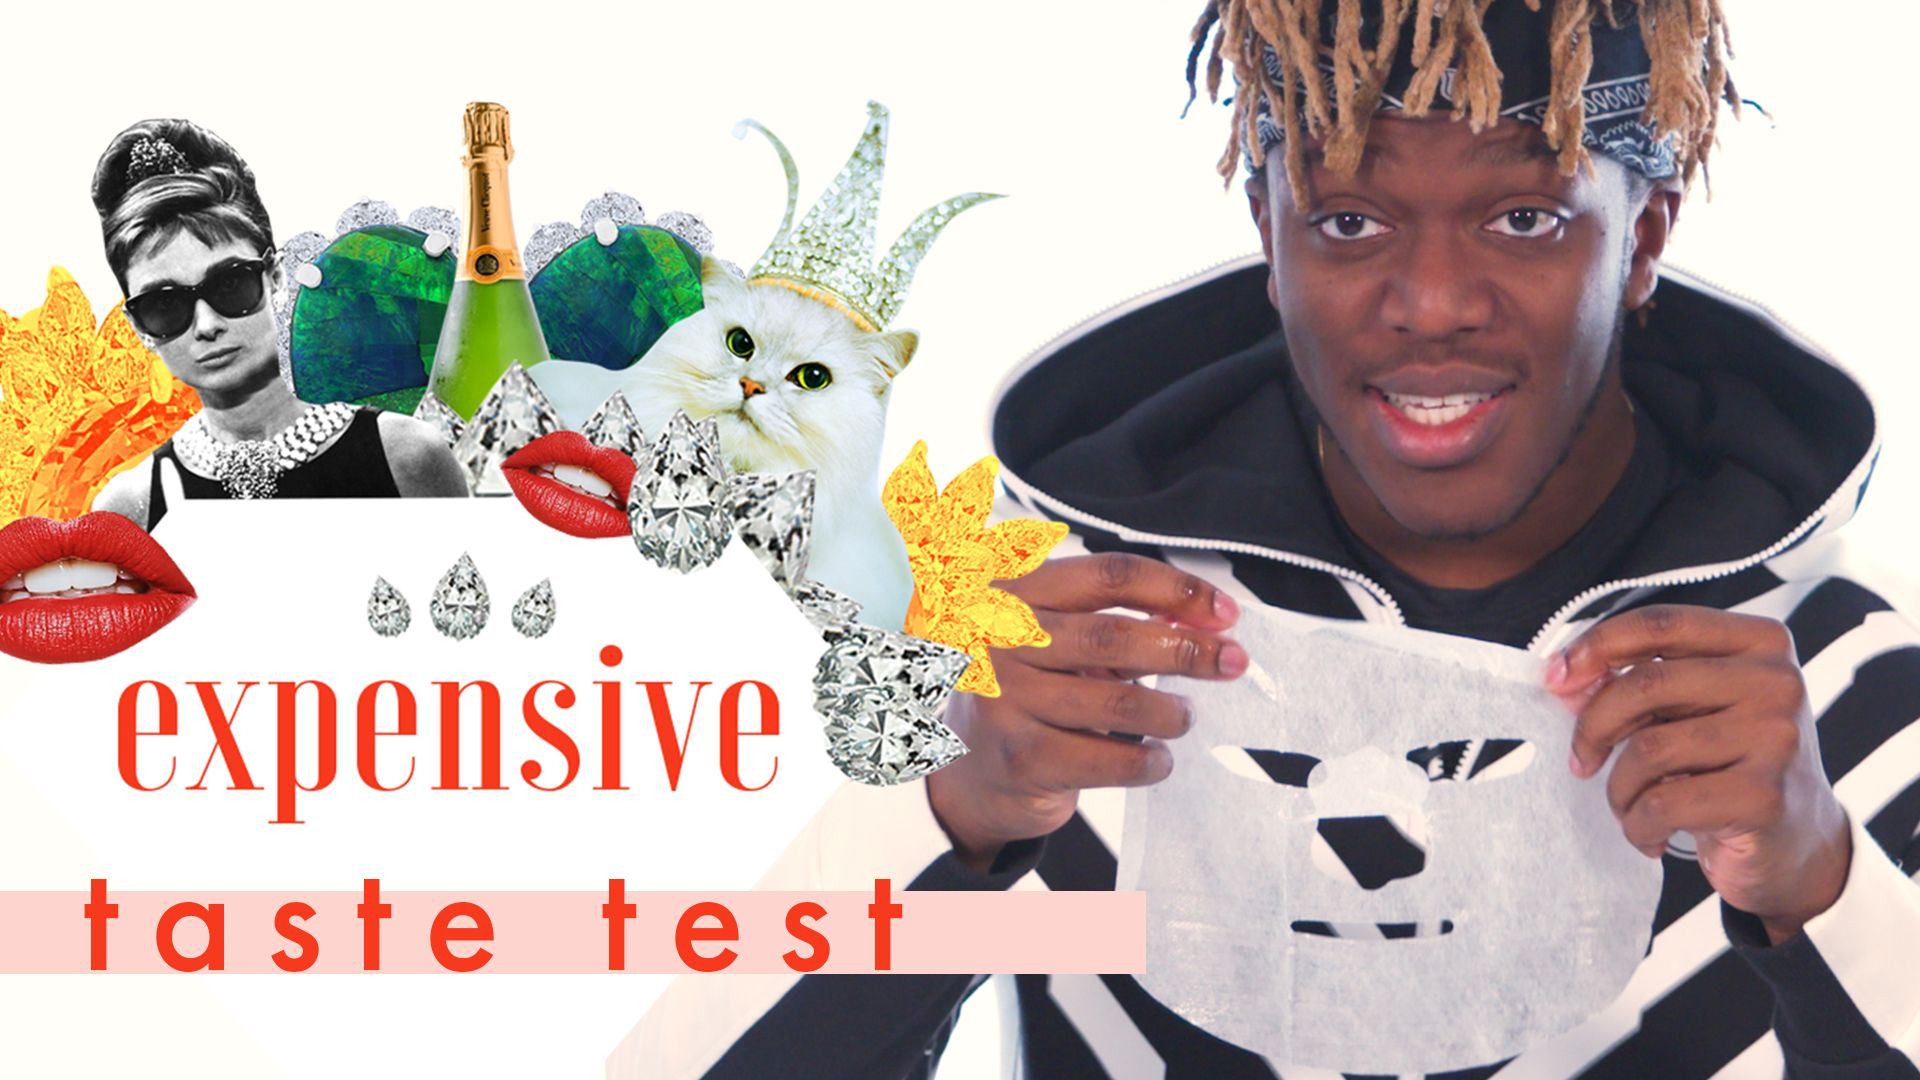 Watch Us Make KSI Wash a Barbie Doll's Hair and Eat Cheetos on 'Expensive Taste Test'